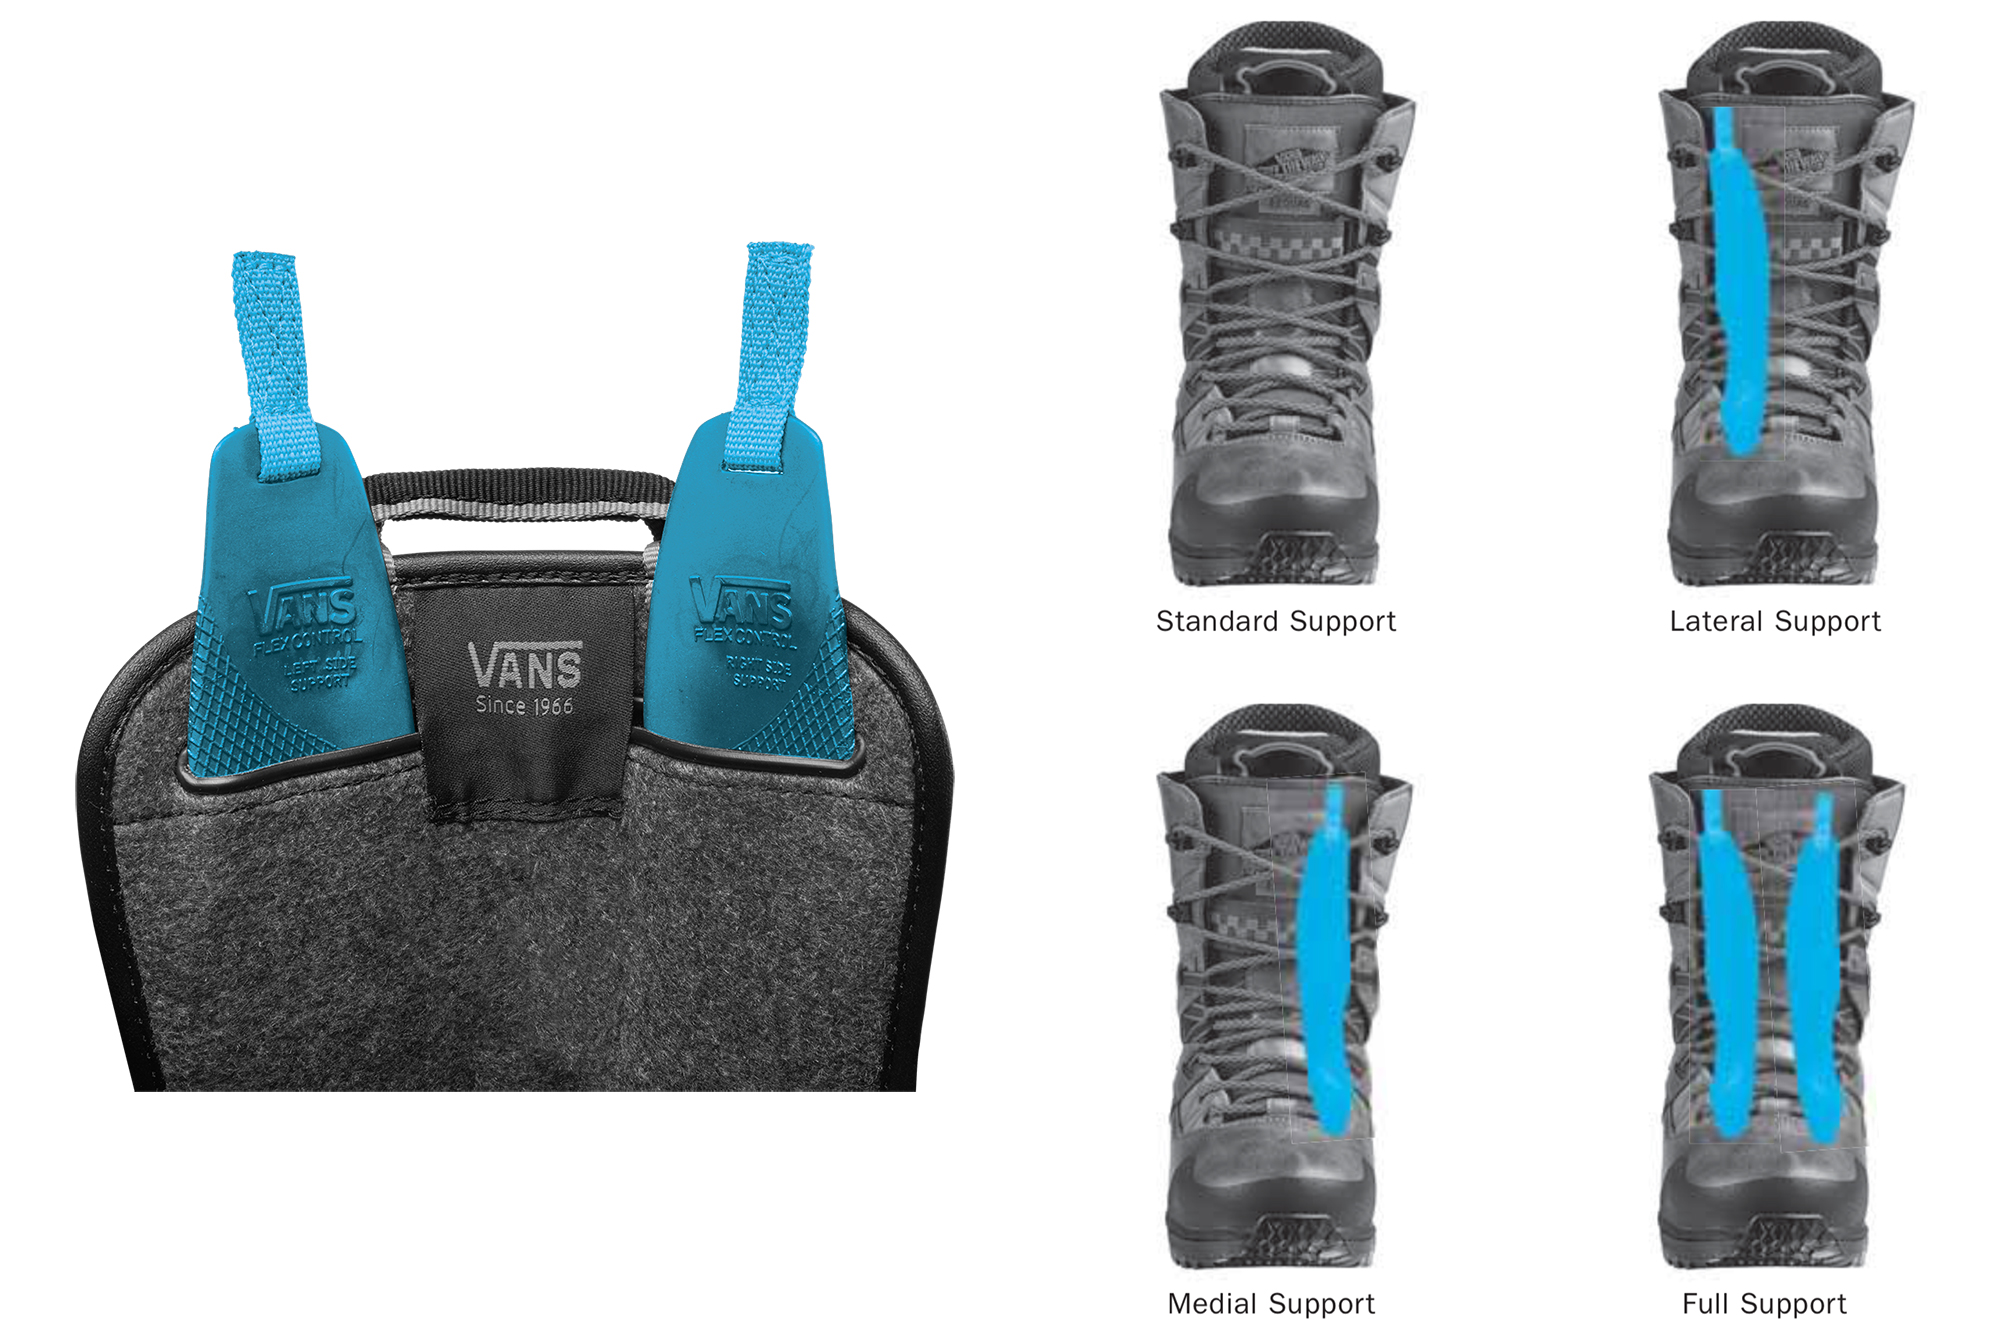 733e04806f1 First Look: Vans Breathable, Variable Flex Snowboard Boot | GearJunkie